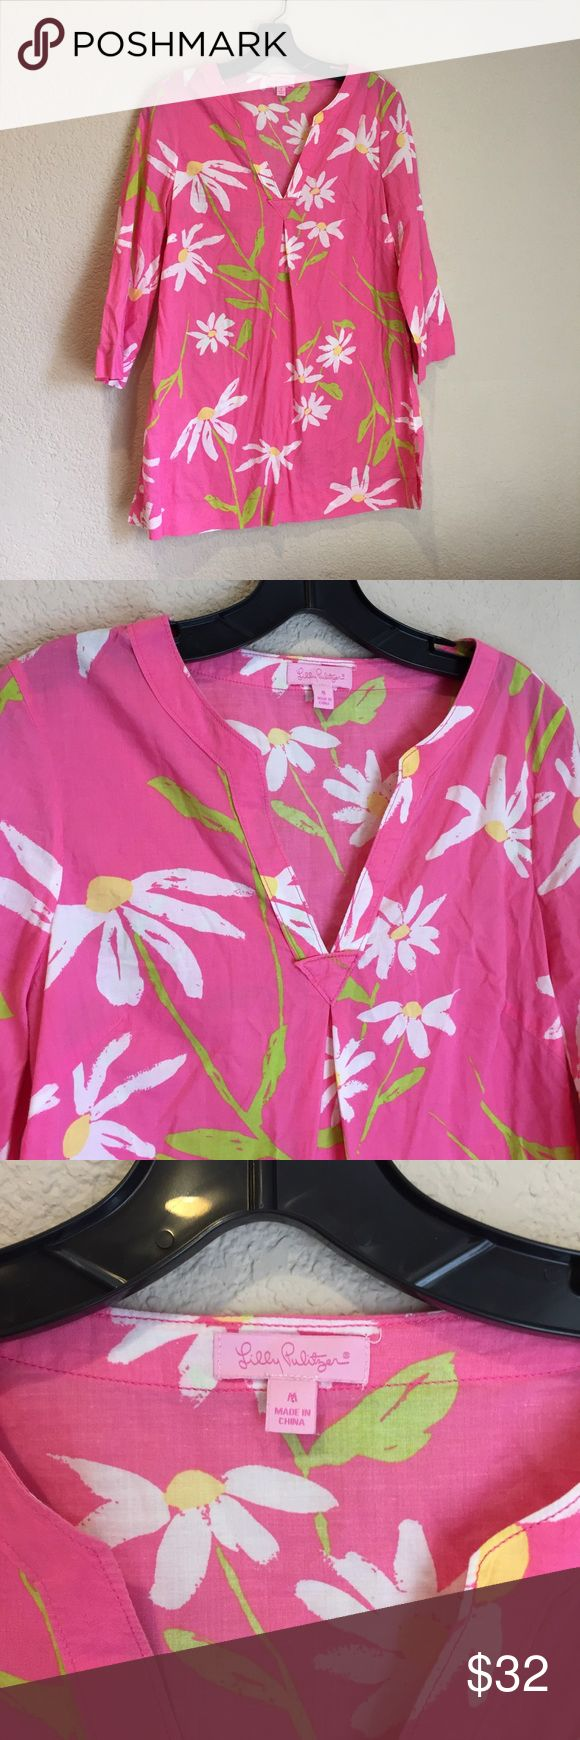 Lilly Pulitzer daisy floral pink tunic top Lilly Pulitzer daisy floral pink tunic top good preloved condition Lilly Pulitzer Tops